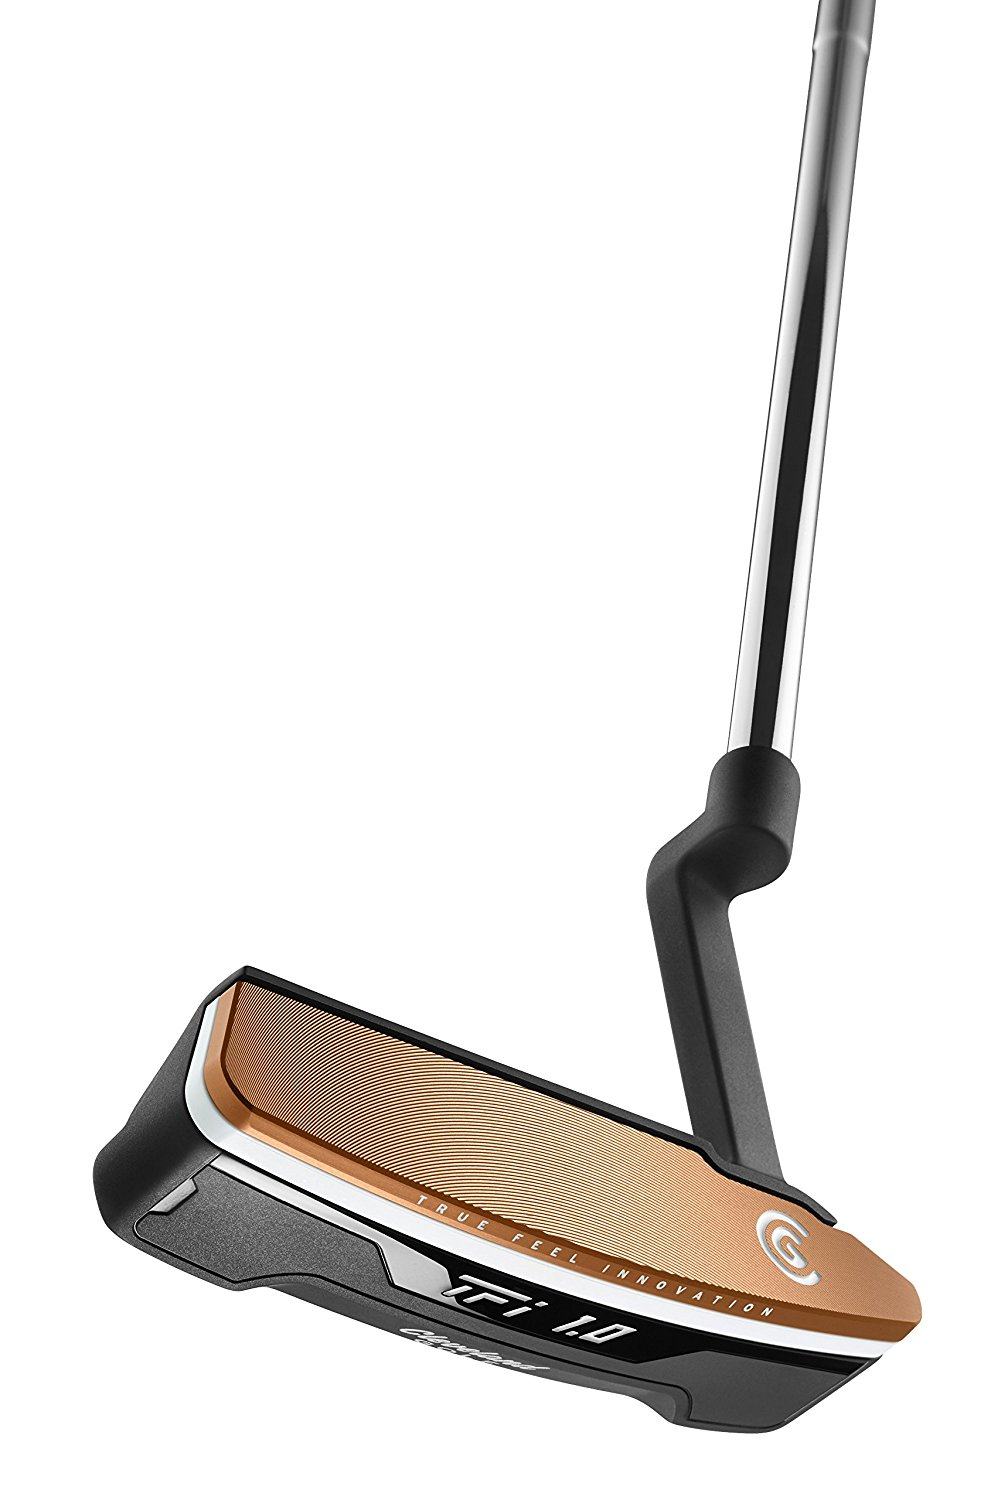 Cleveland Golf TFI Blade Golf Putter – Available in 3 Shaft Lengths and 2 Hand Orientations